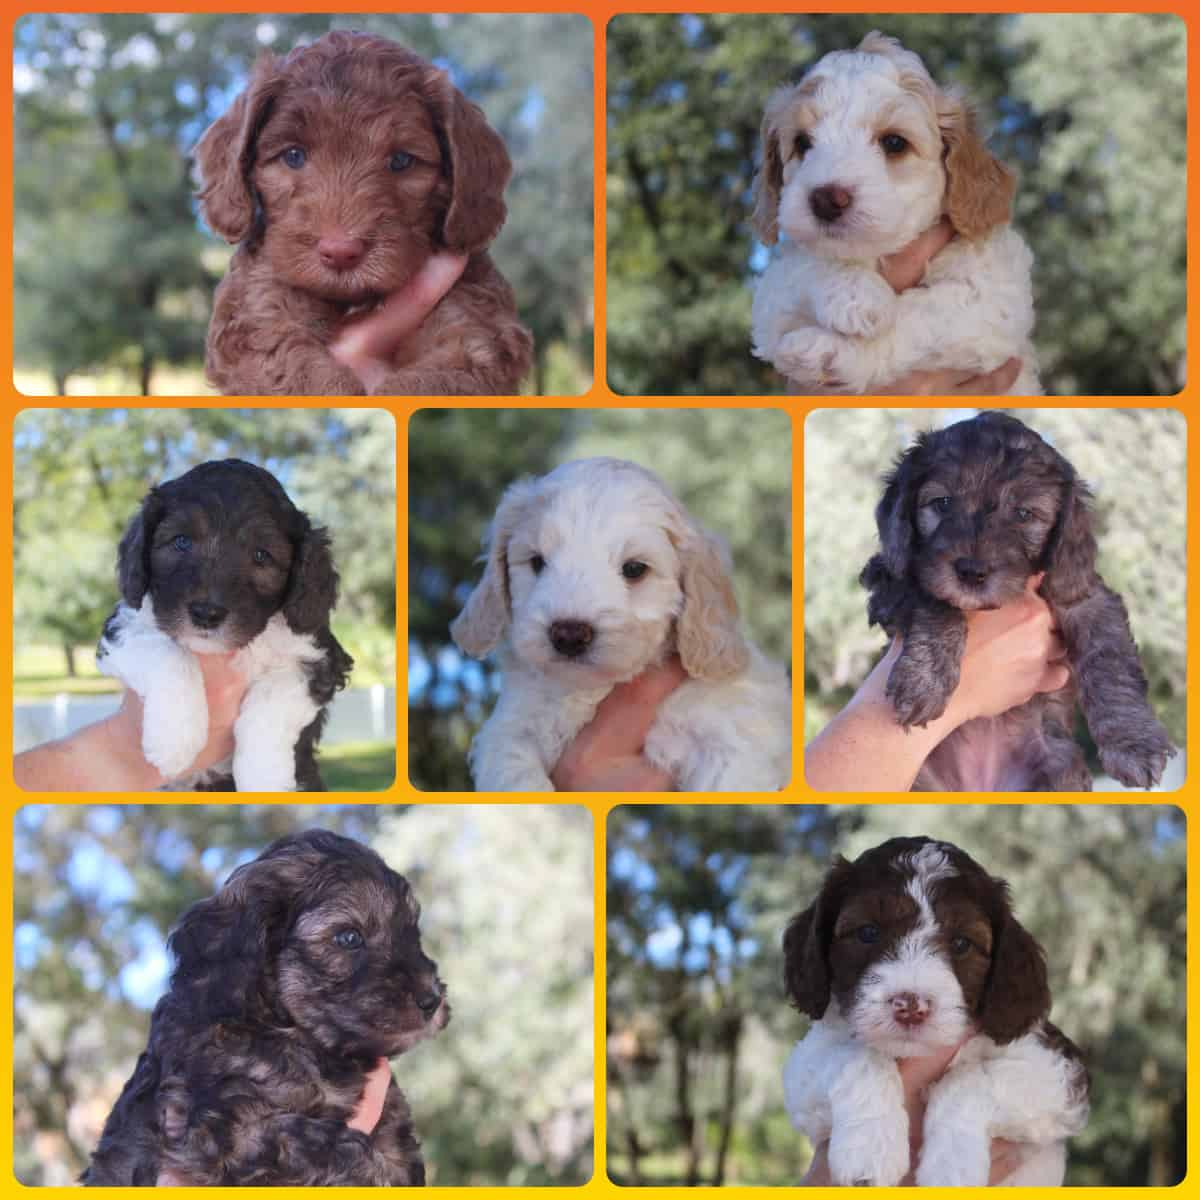 Australian Labradoodle puppies at 6 weeks old from Dilly's Fall 2020 litter